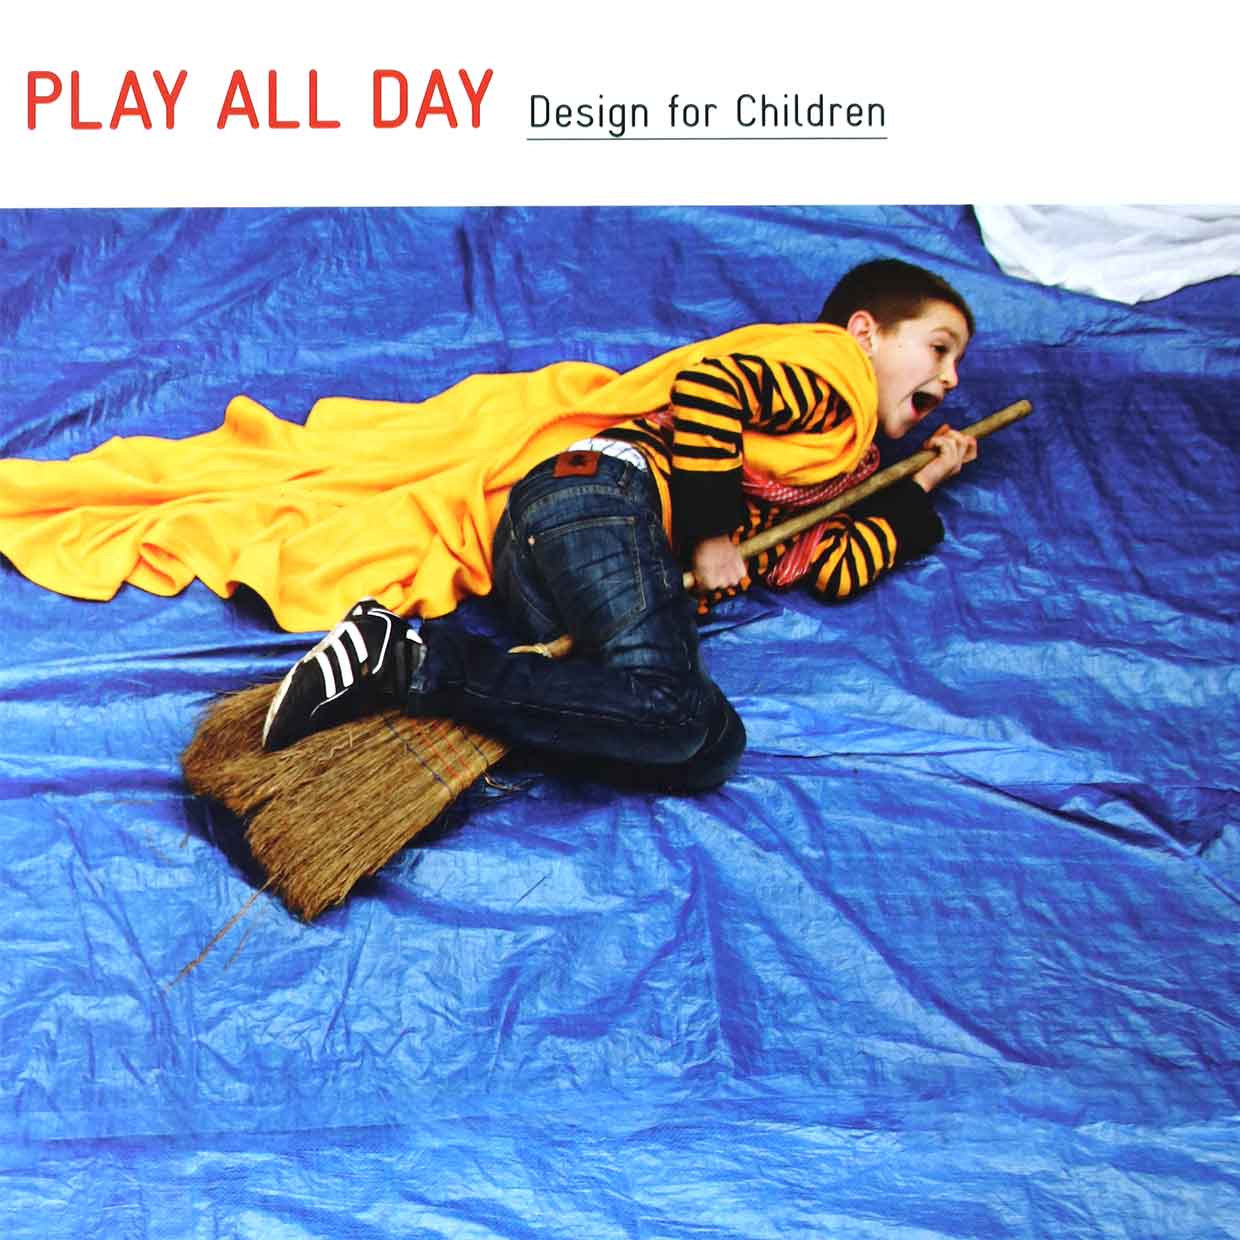 play-all-day-design-for-children-gestalten-verlag-cover-quad